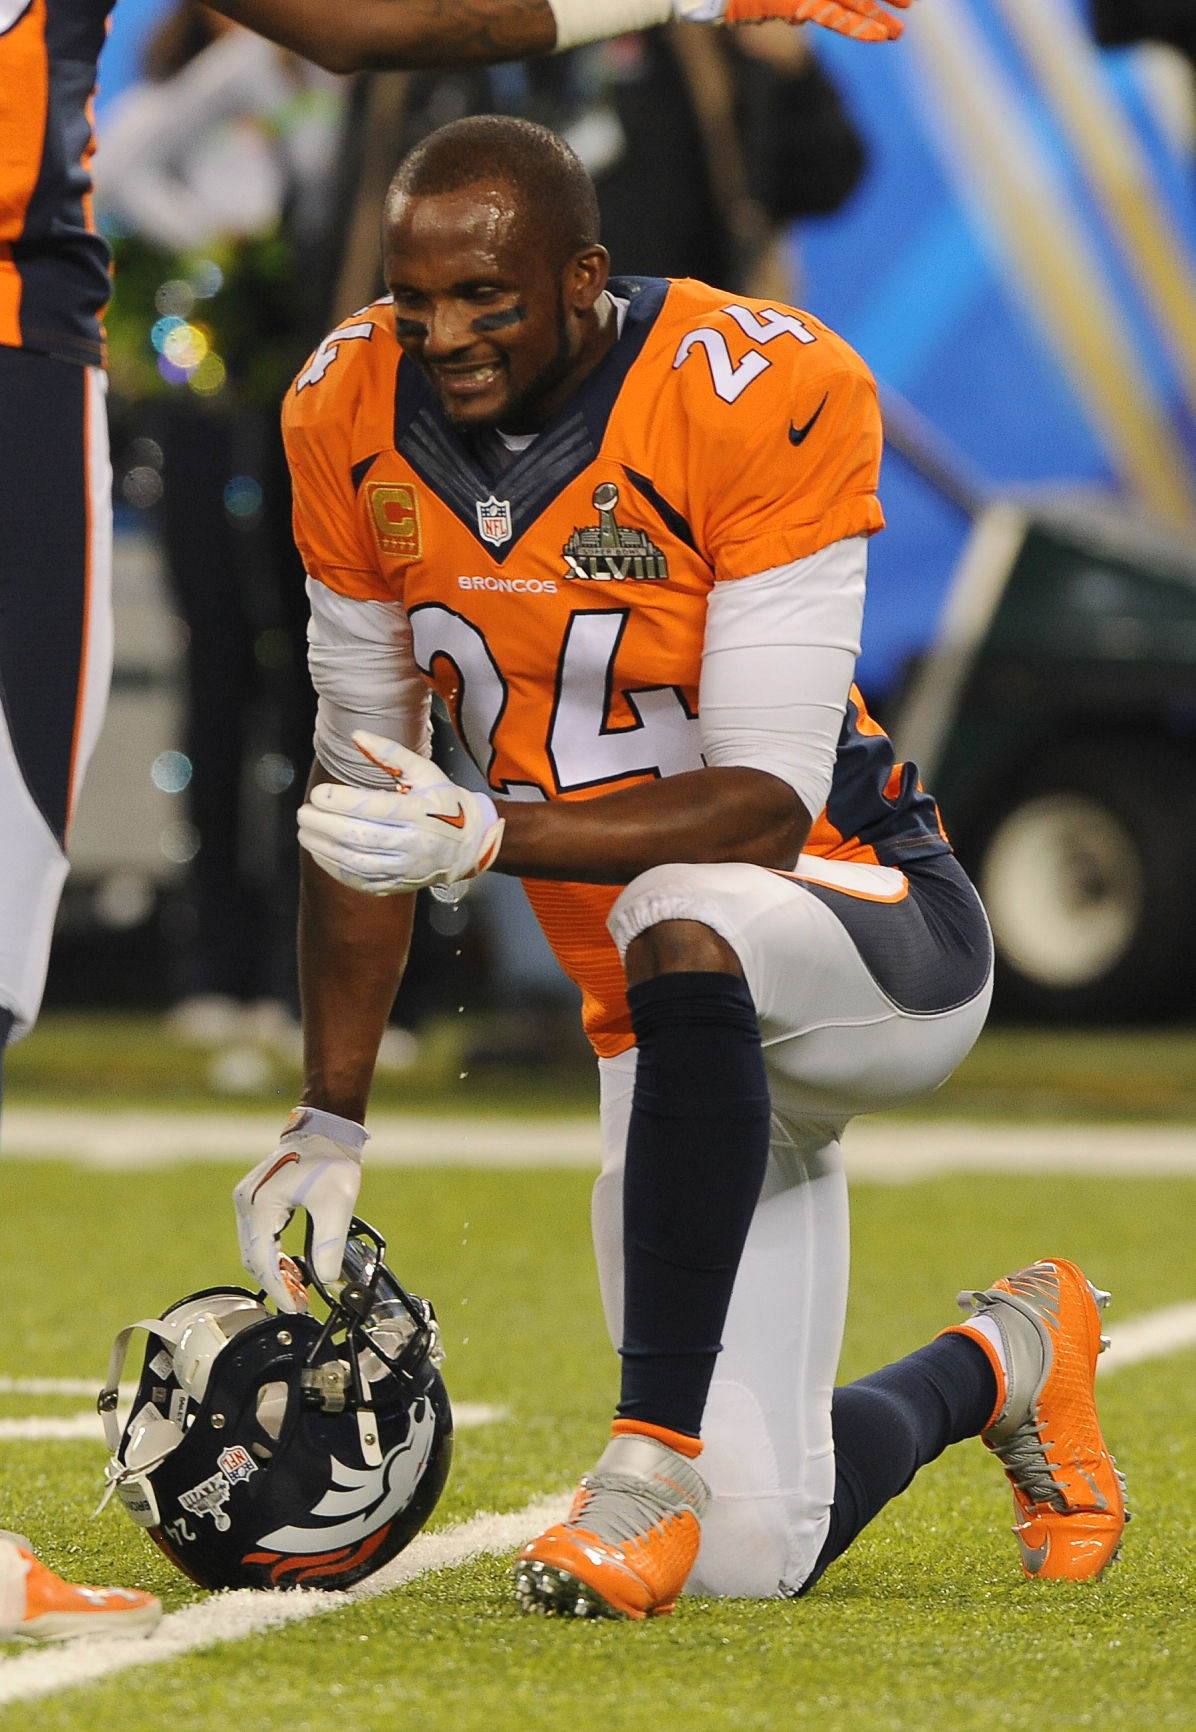 Denvers cornerback champ bailey kneels and grimaces in between plays during  the first quarter jpg 1196x1732 10b8be294